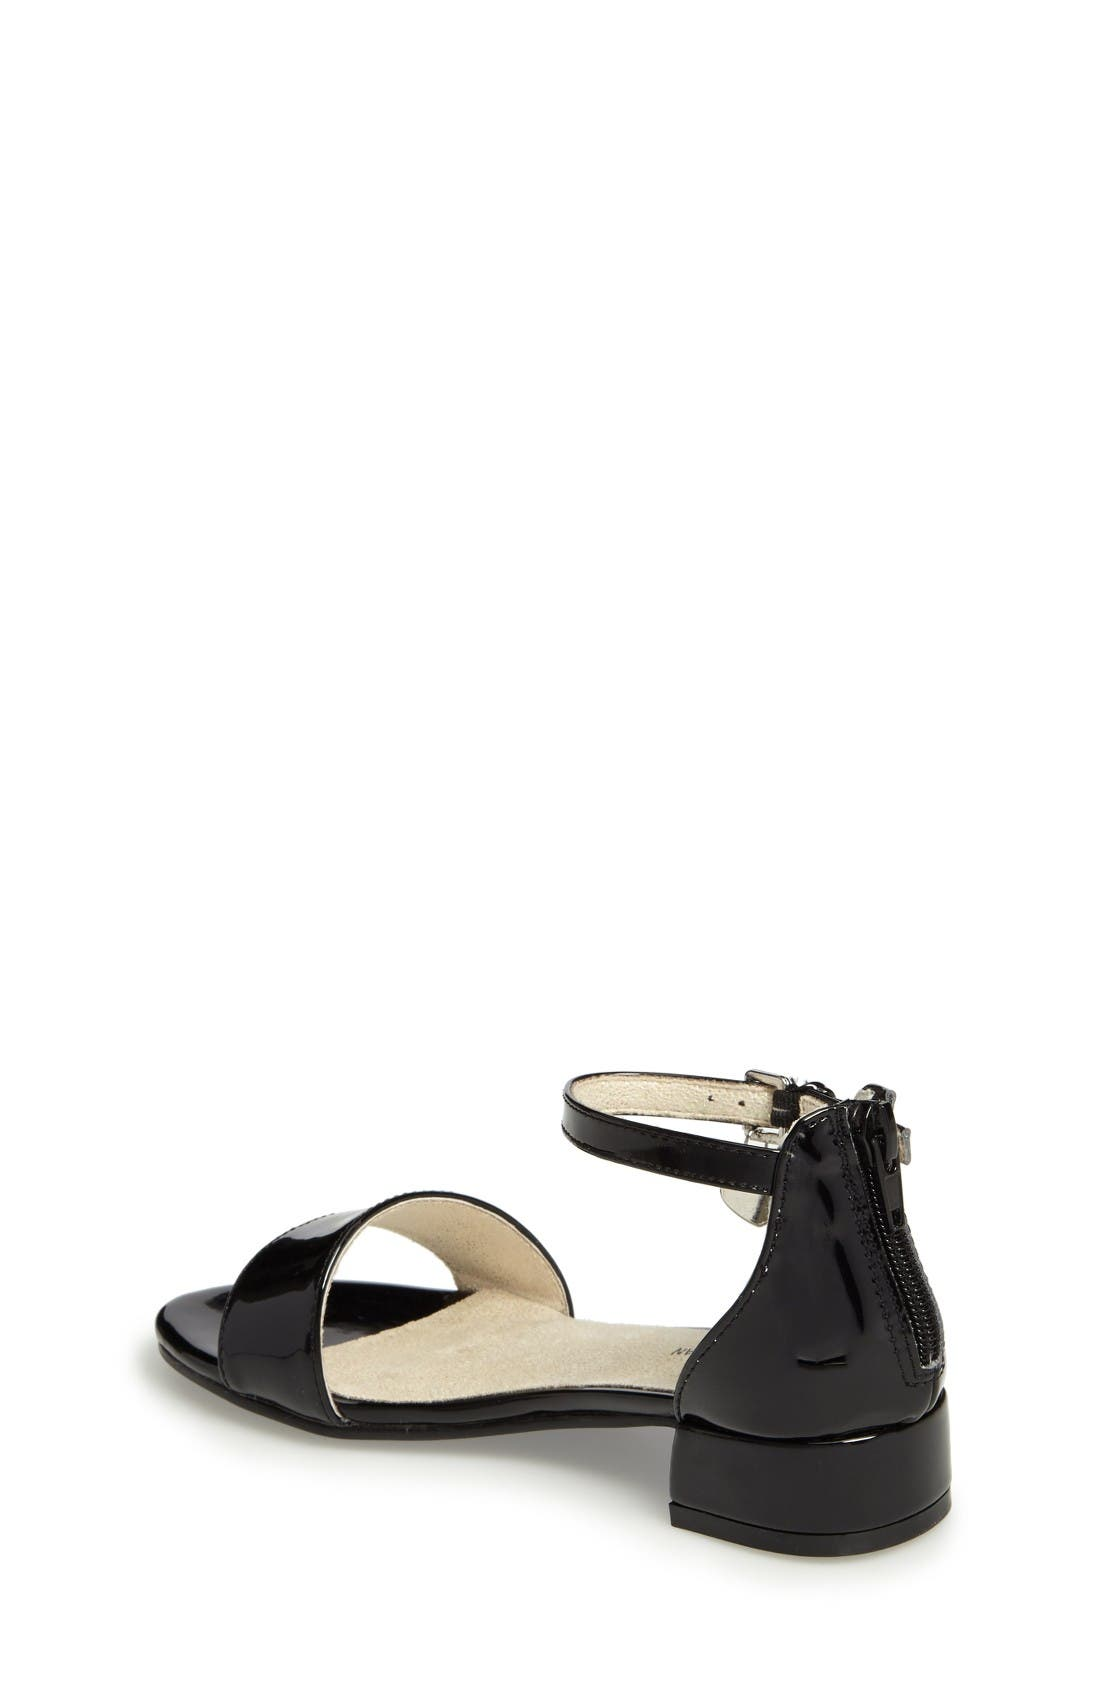 Alternate Image 2  - Stuart Weitzman Penelope Nola Sandal (Toddler, Little Kid & Big Kid)